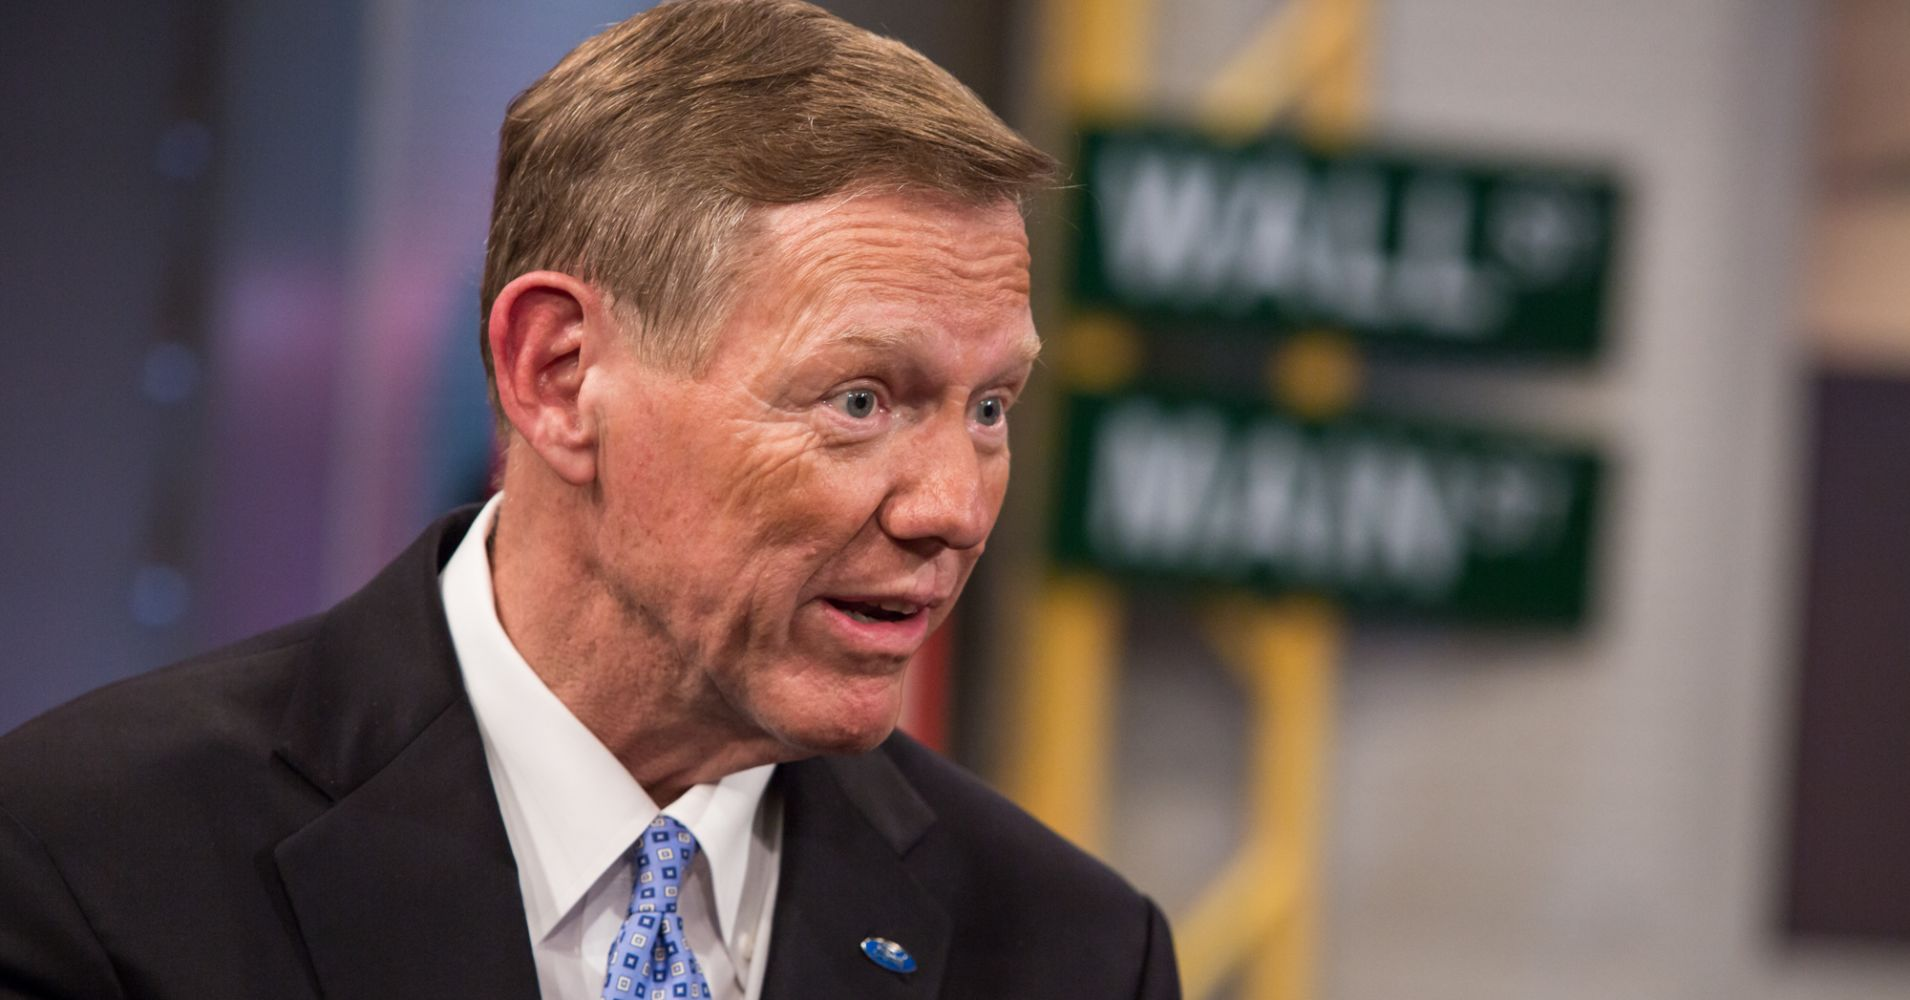 alan mullaly, ceo ford, ceo boeing, board of director di google, board of director di alphabet, act consulting